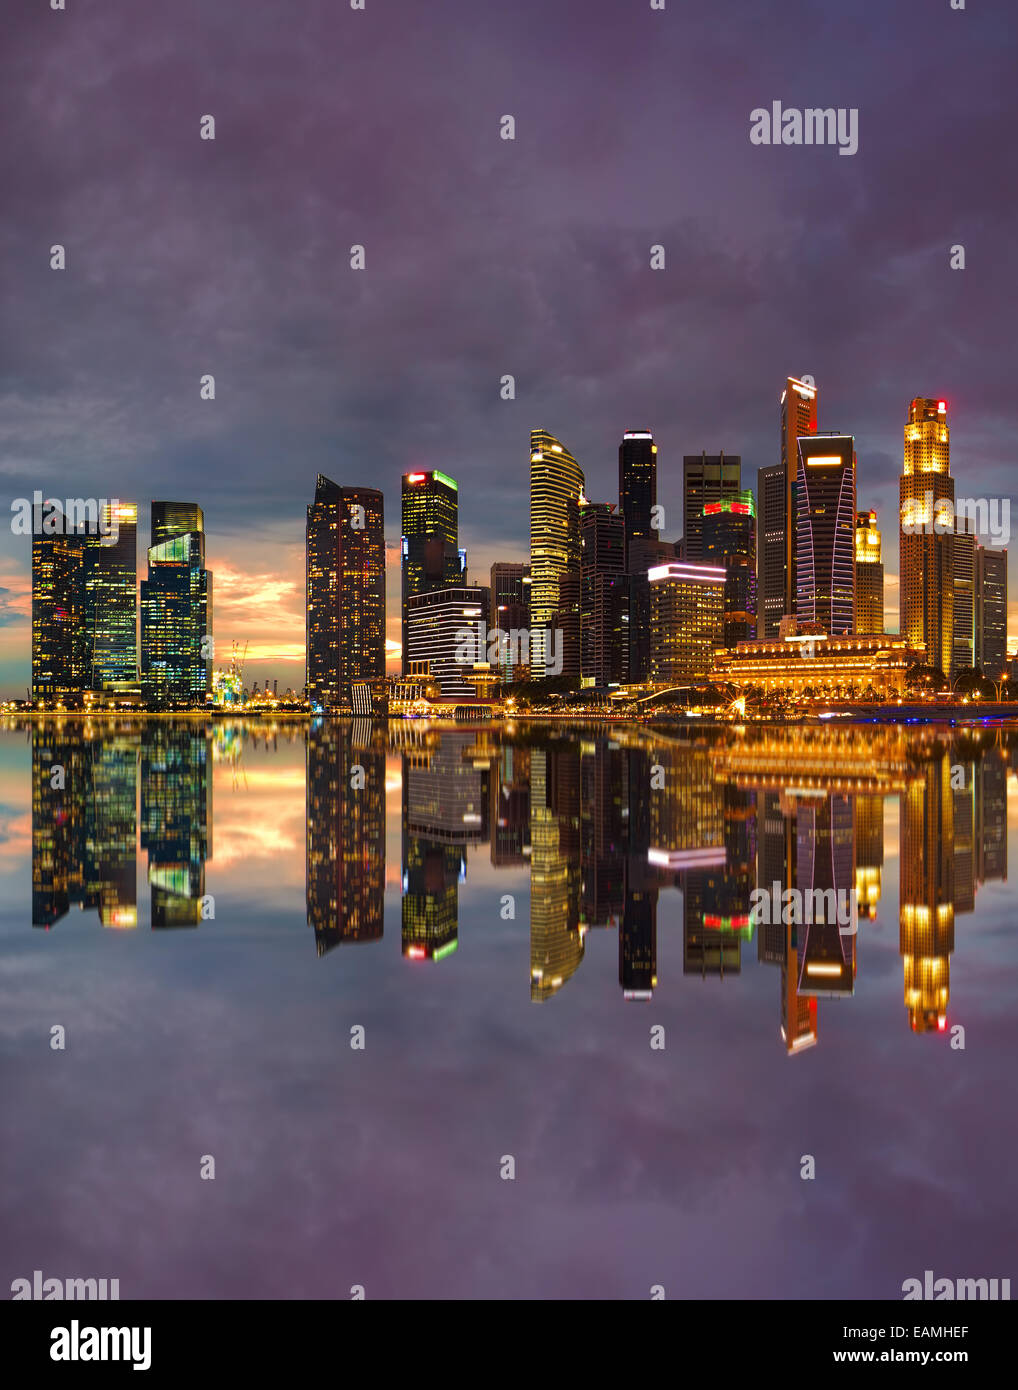 Singapore cityscape at sunset - Stock Image